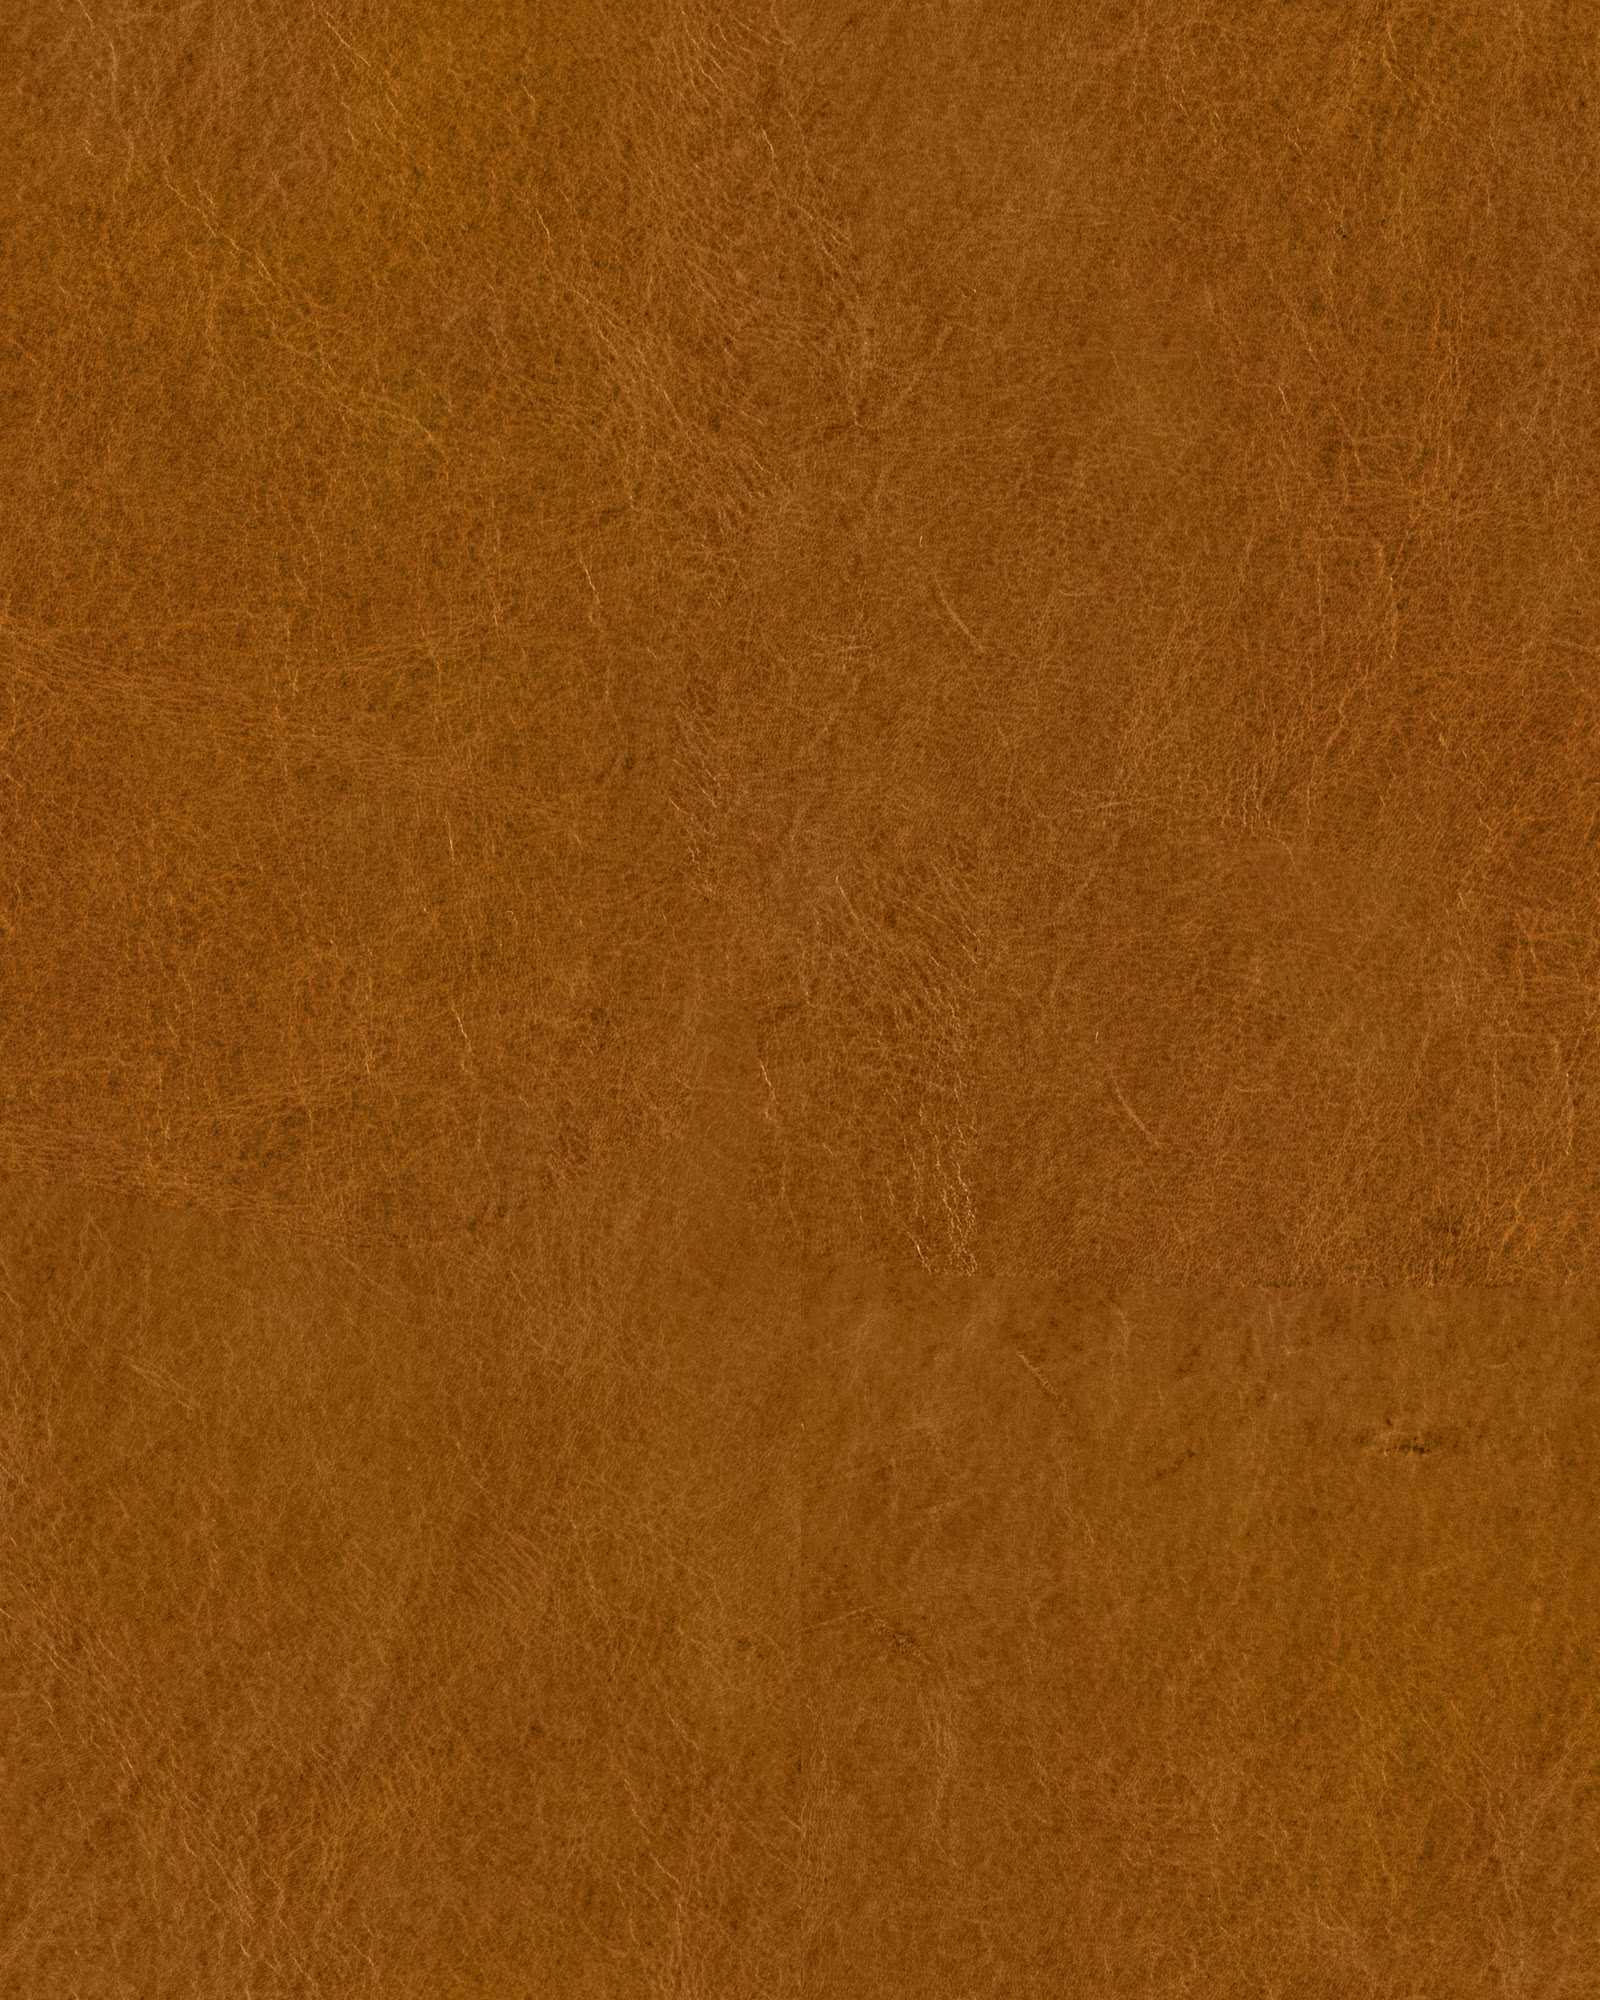 Distressed Leather - Chestnut,